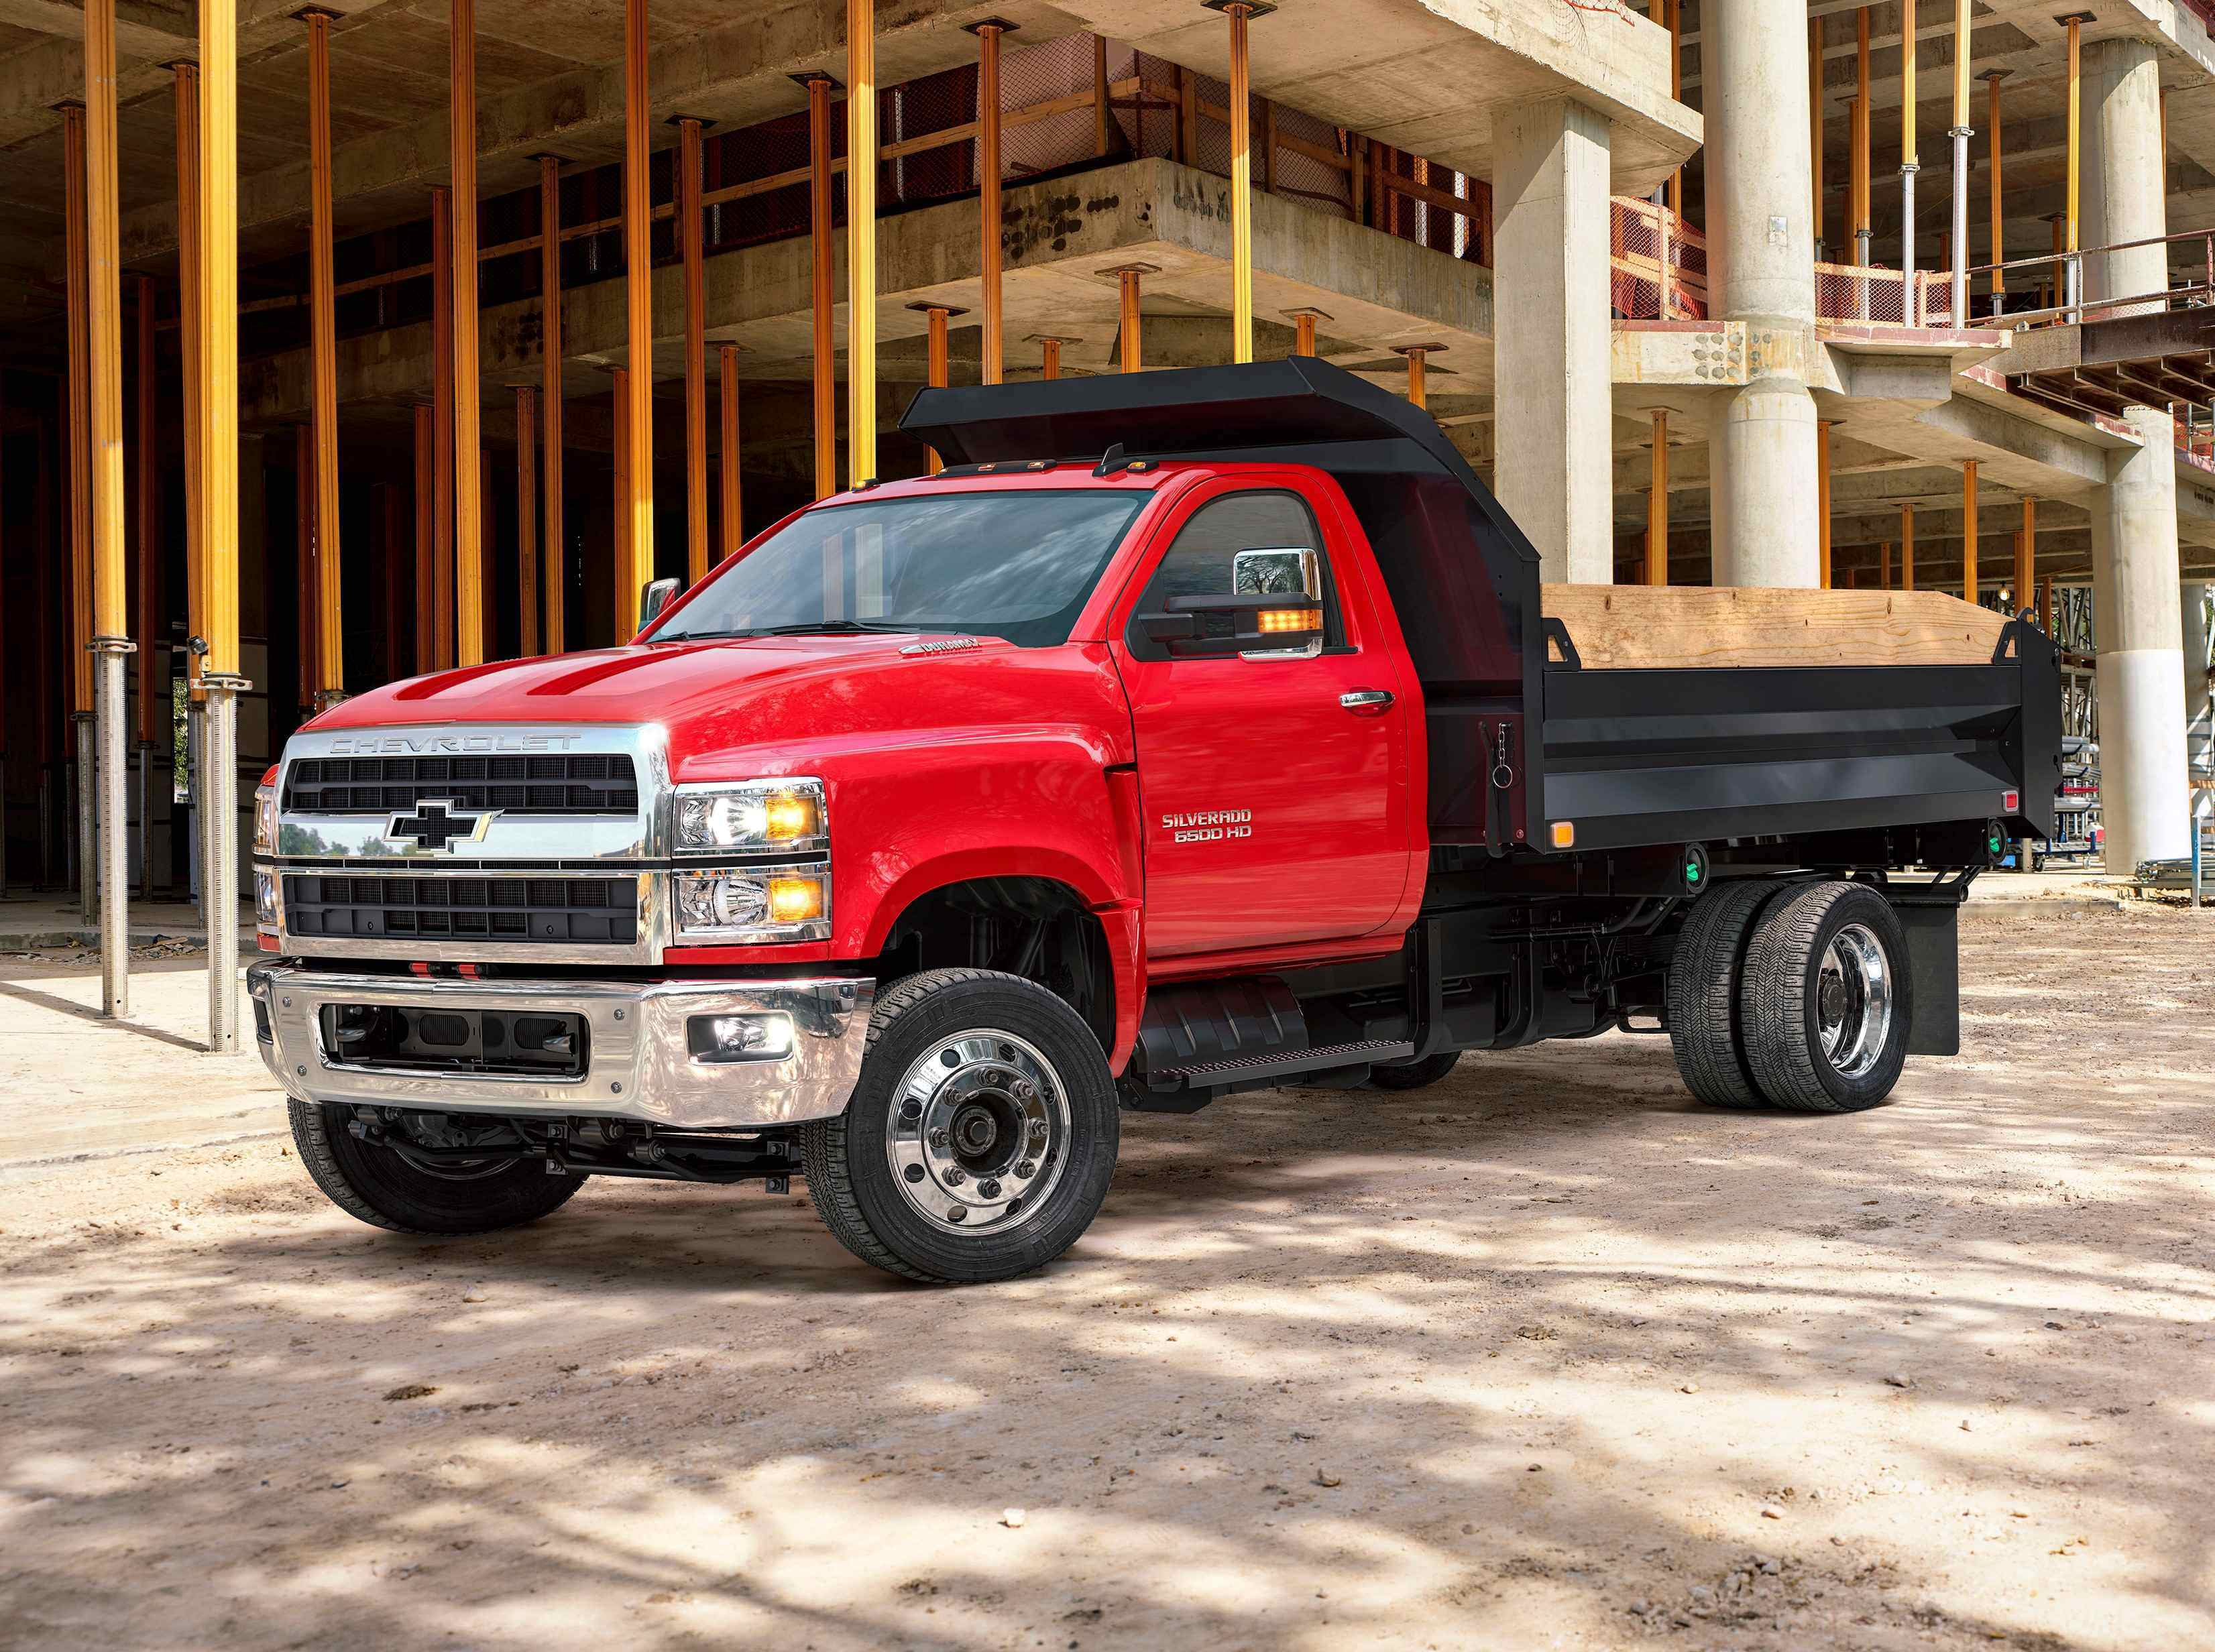 48 All New 2019 Gmc 4500Hd Review with 2019 Gmc 4500Hd